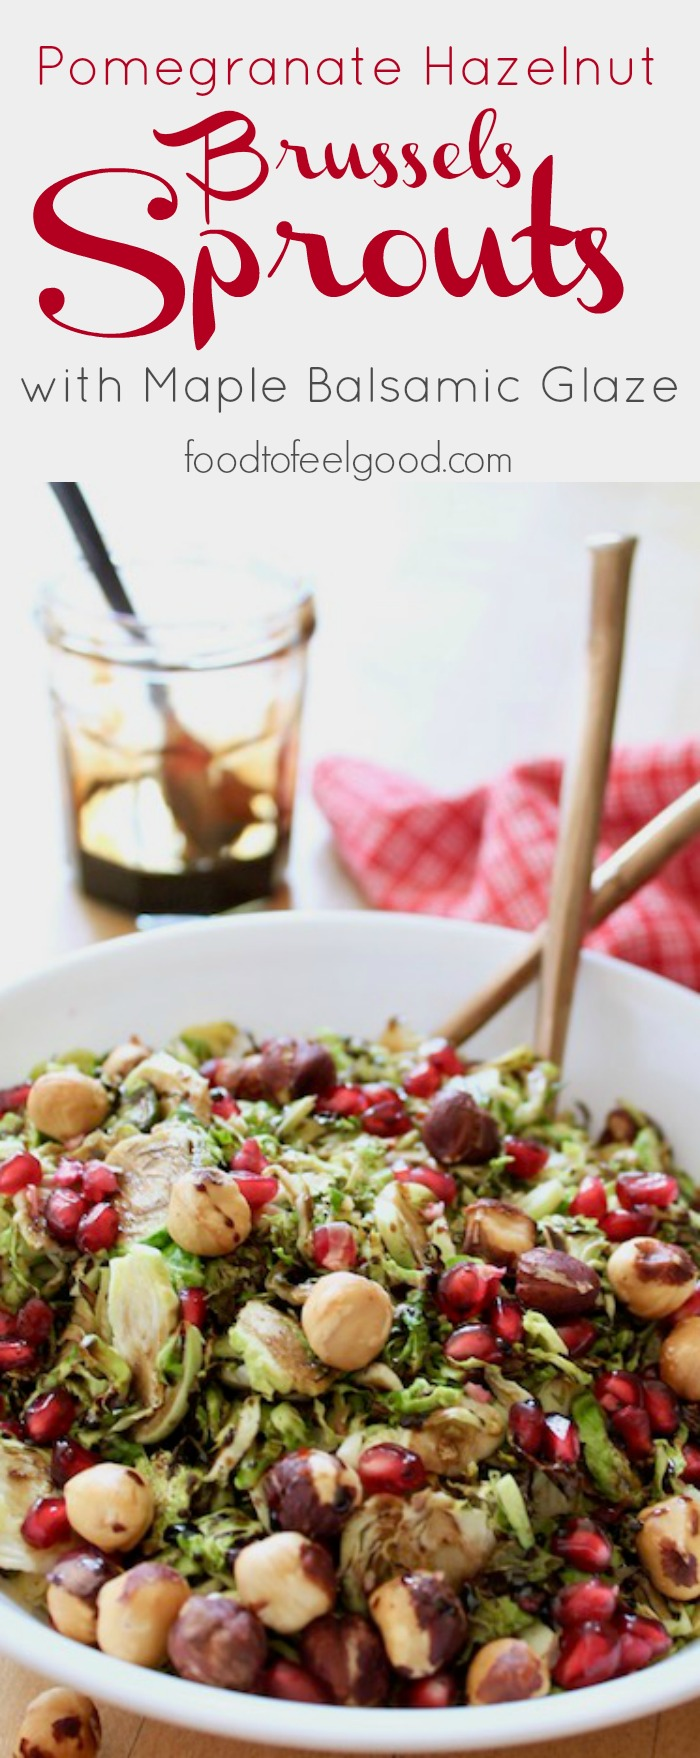 Pomegranate Hazelnut Shredded Brussels Sprouts with Maple Balsamic Glaze | A healthy Paleo and Vegan holiday dish | Gluten-Free | Dairy-Free | #healthyholidayrecipes #brusselssprouts #paleoveganrecipes